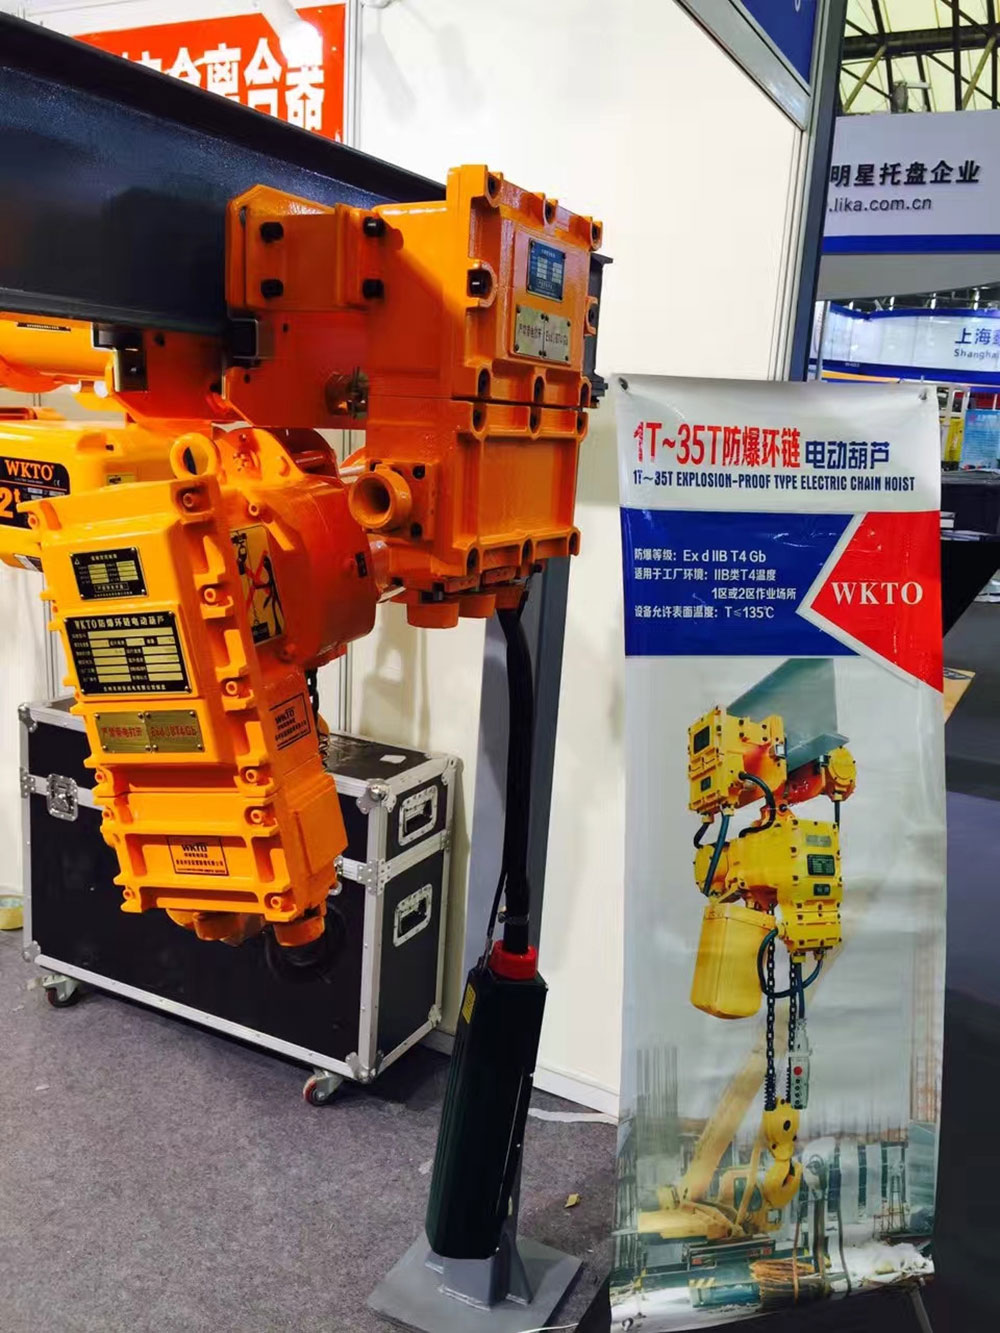 016-MHTOOL-WKTO-Explosion-proof-Electric-Chain-Hoist